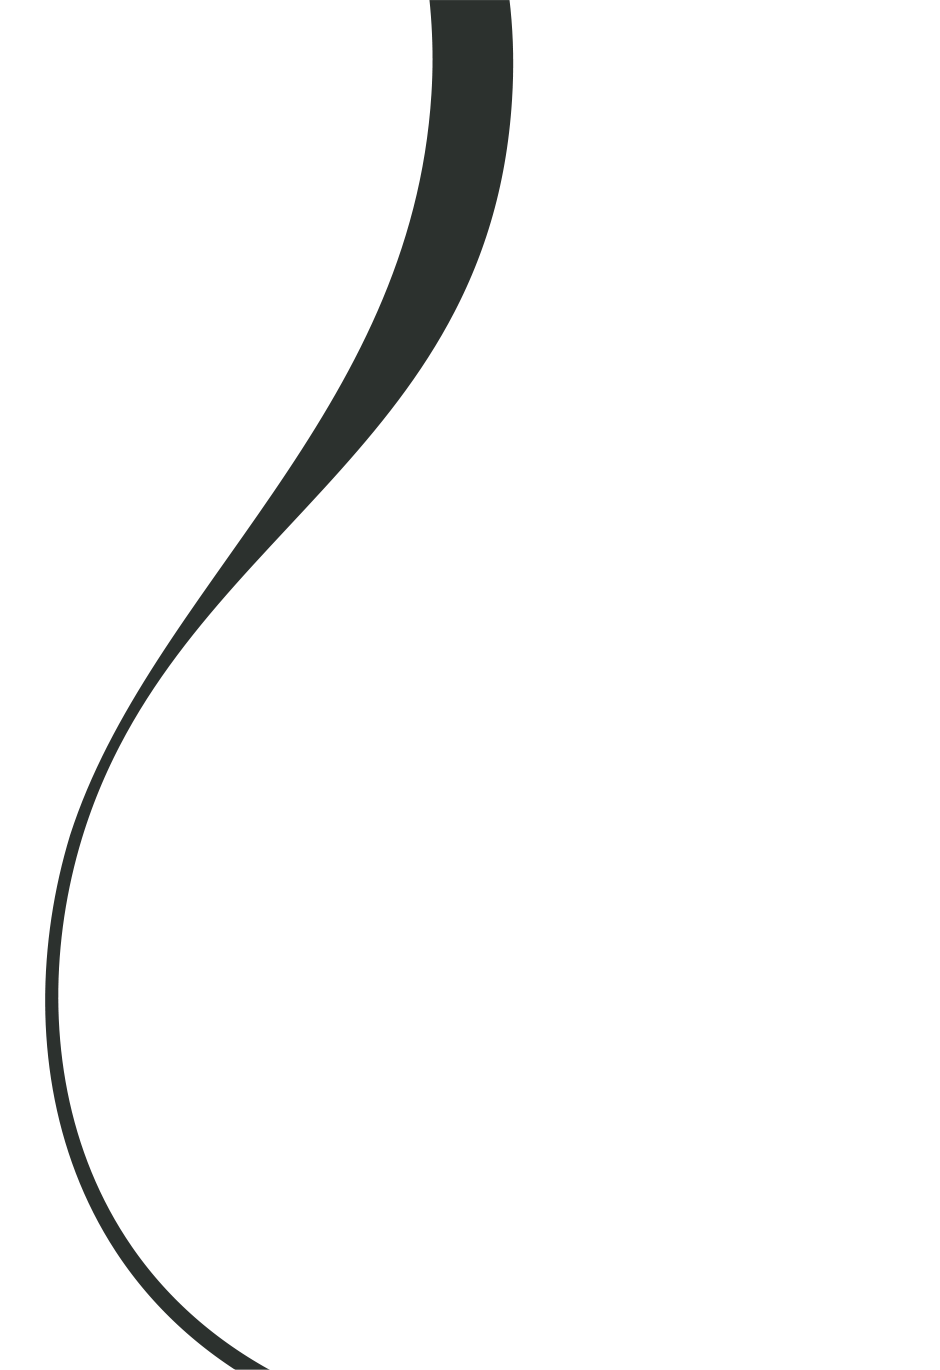 dolce design donne vie vos projets r alisation de projet r alisation architecturale. Black Bedroom Furniture Sets. Home Design Ideas